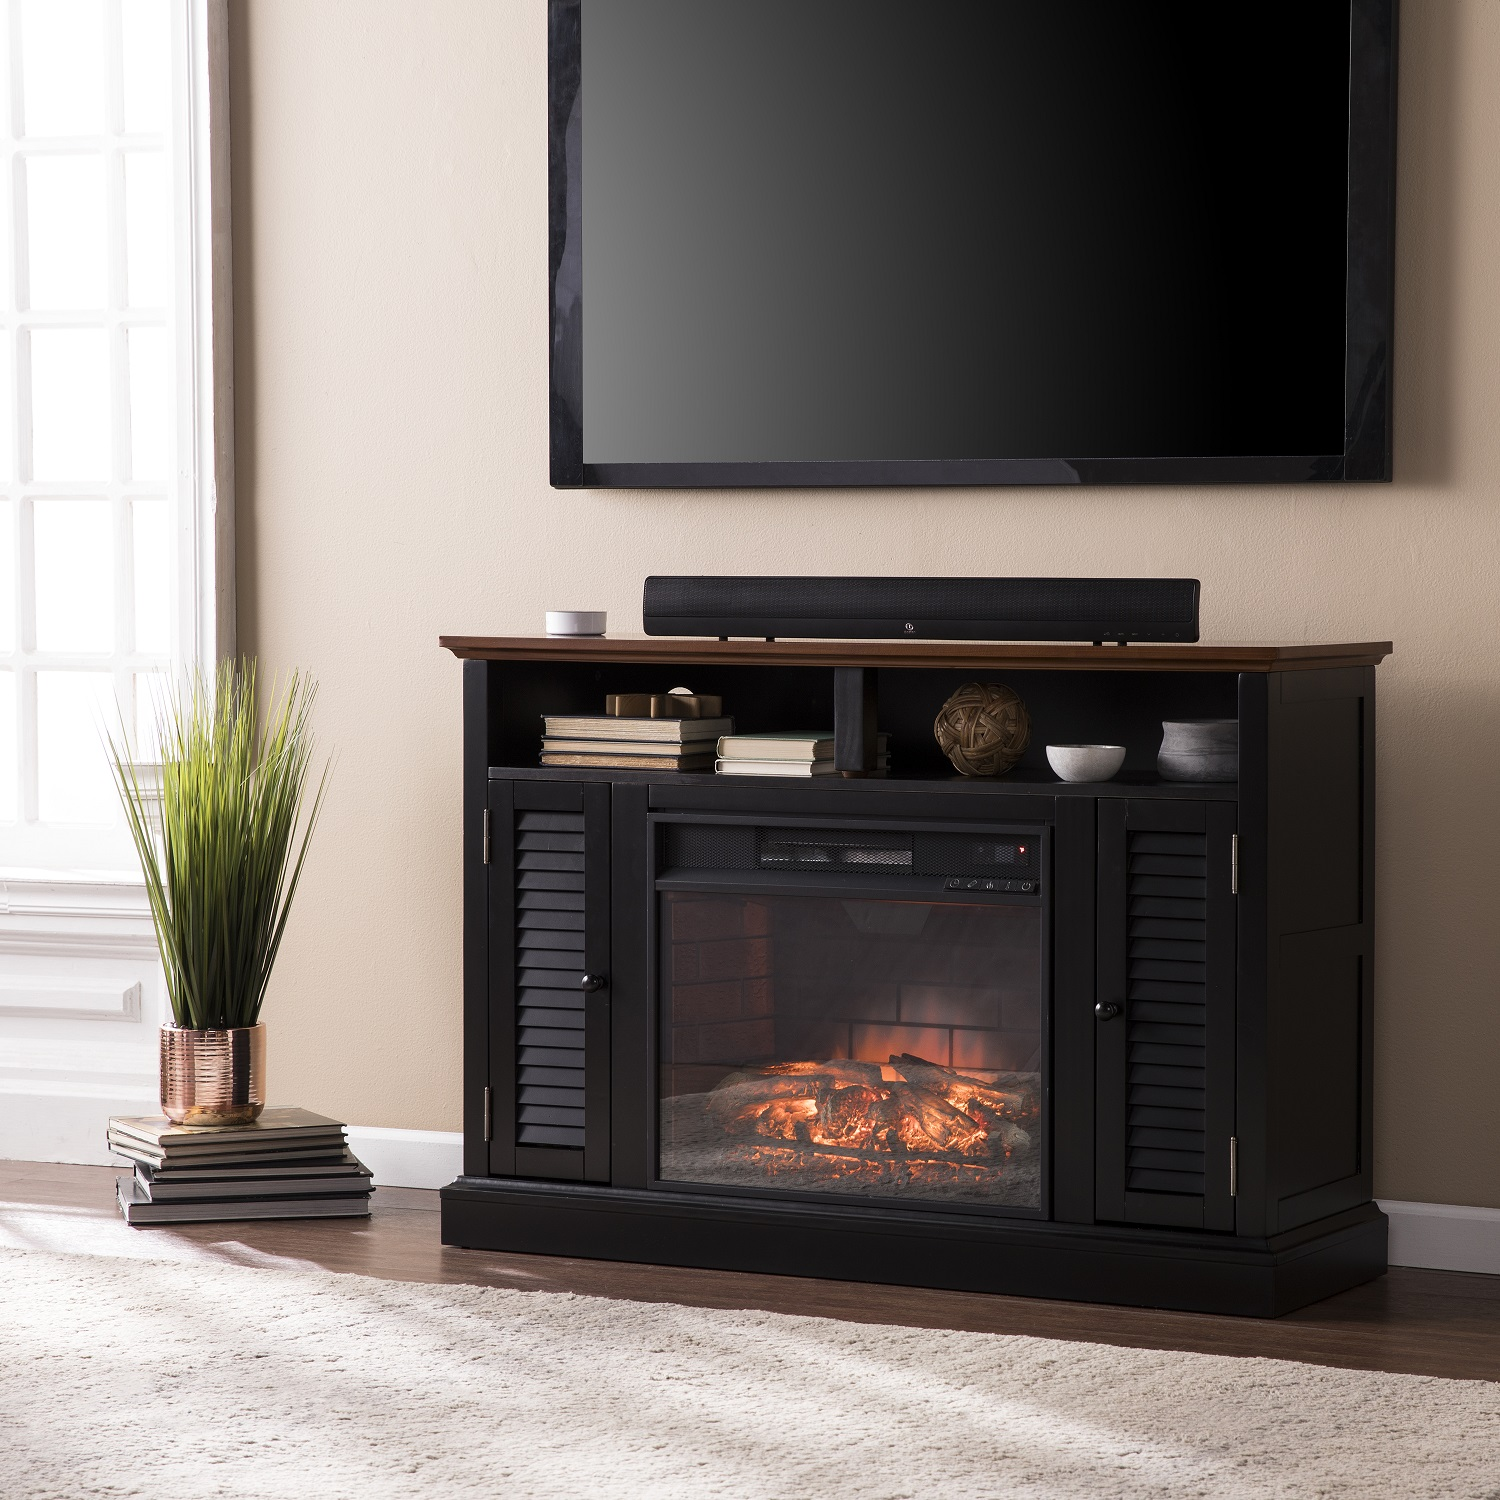 48 Quot Antebellum Media Electric Fireplace Black W Walnut